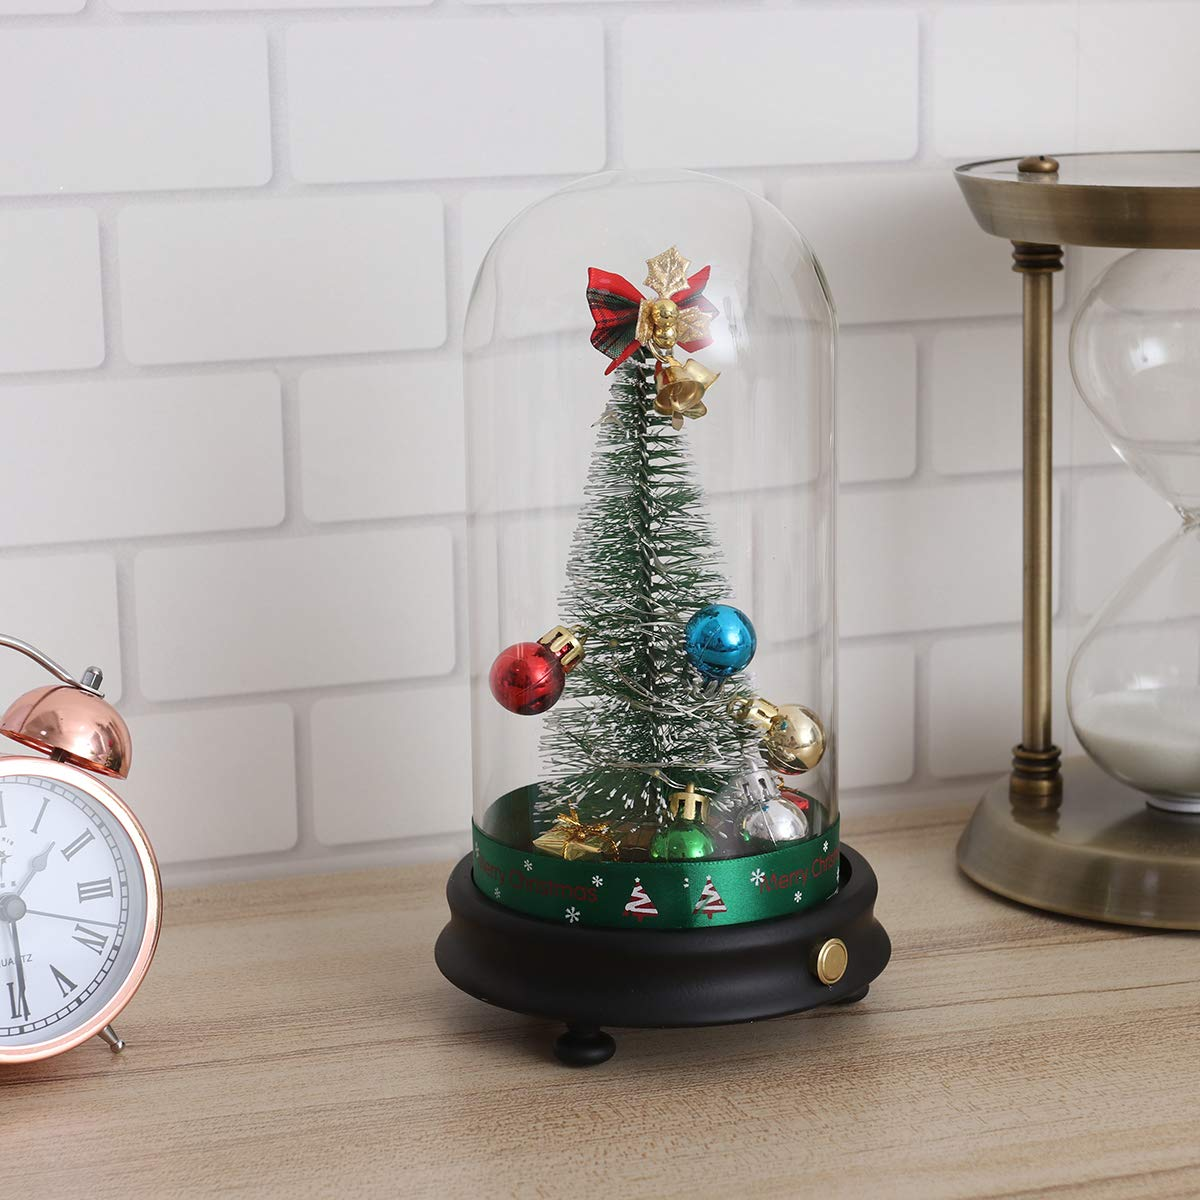 Button Pattern BESTOYARD Pre-lit Christmas Tree in a Glass Dome on A Wooden Base LED Light up Christmas String Light Xmas Party Table Decoration Not Included Battery